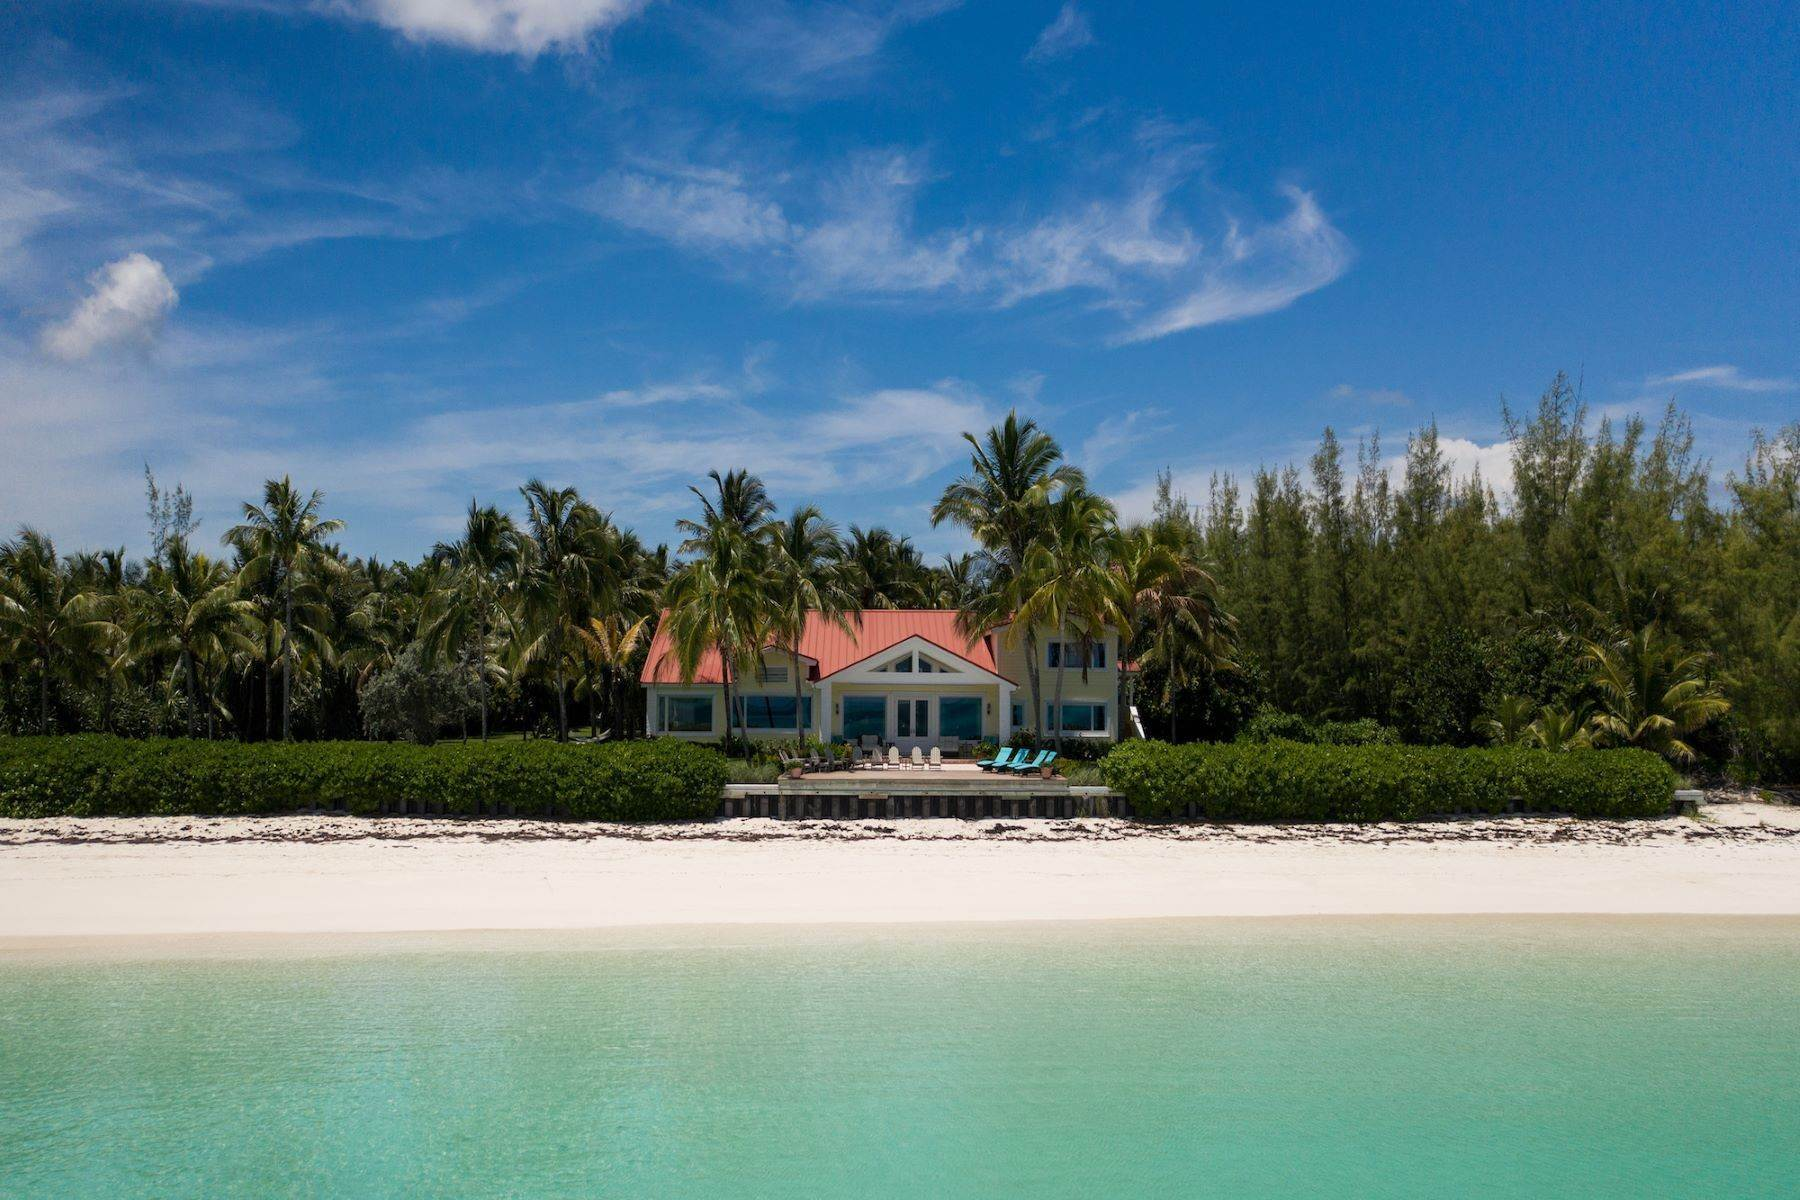 Single Family Homes for Sale at Treasure Cay, Abaco Bahamas